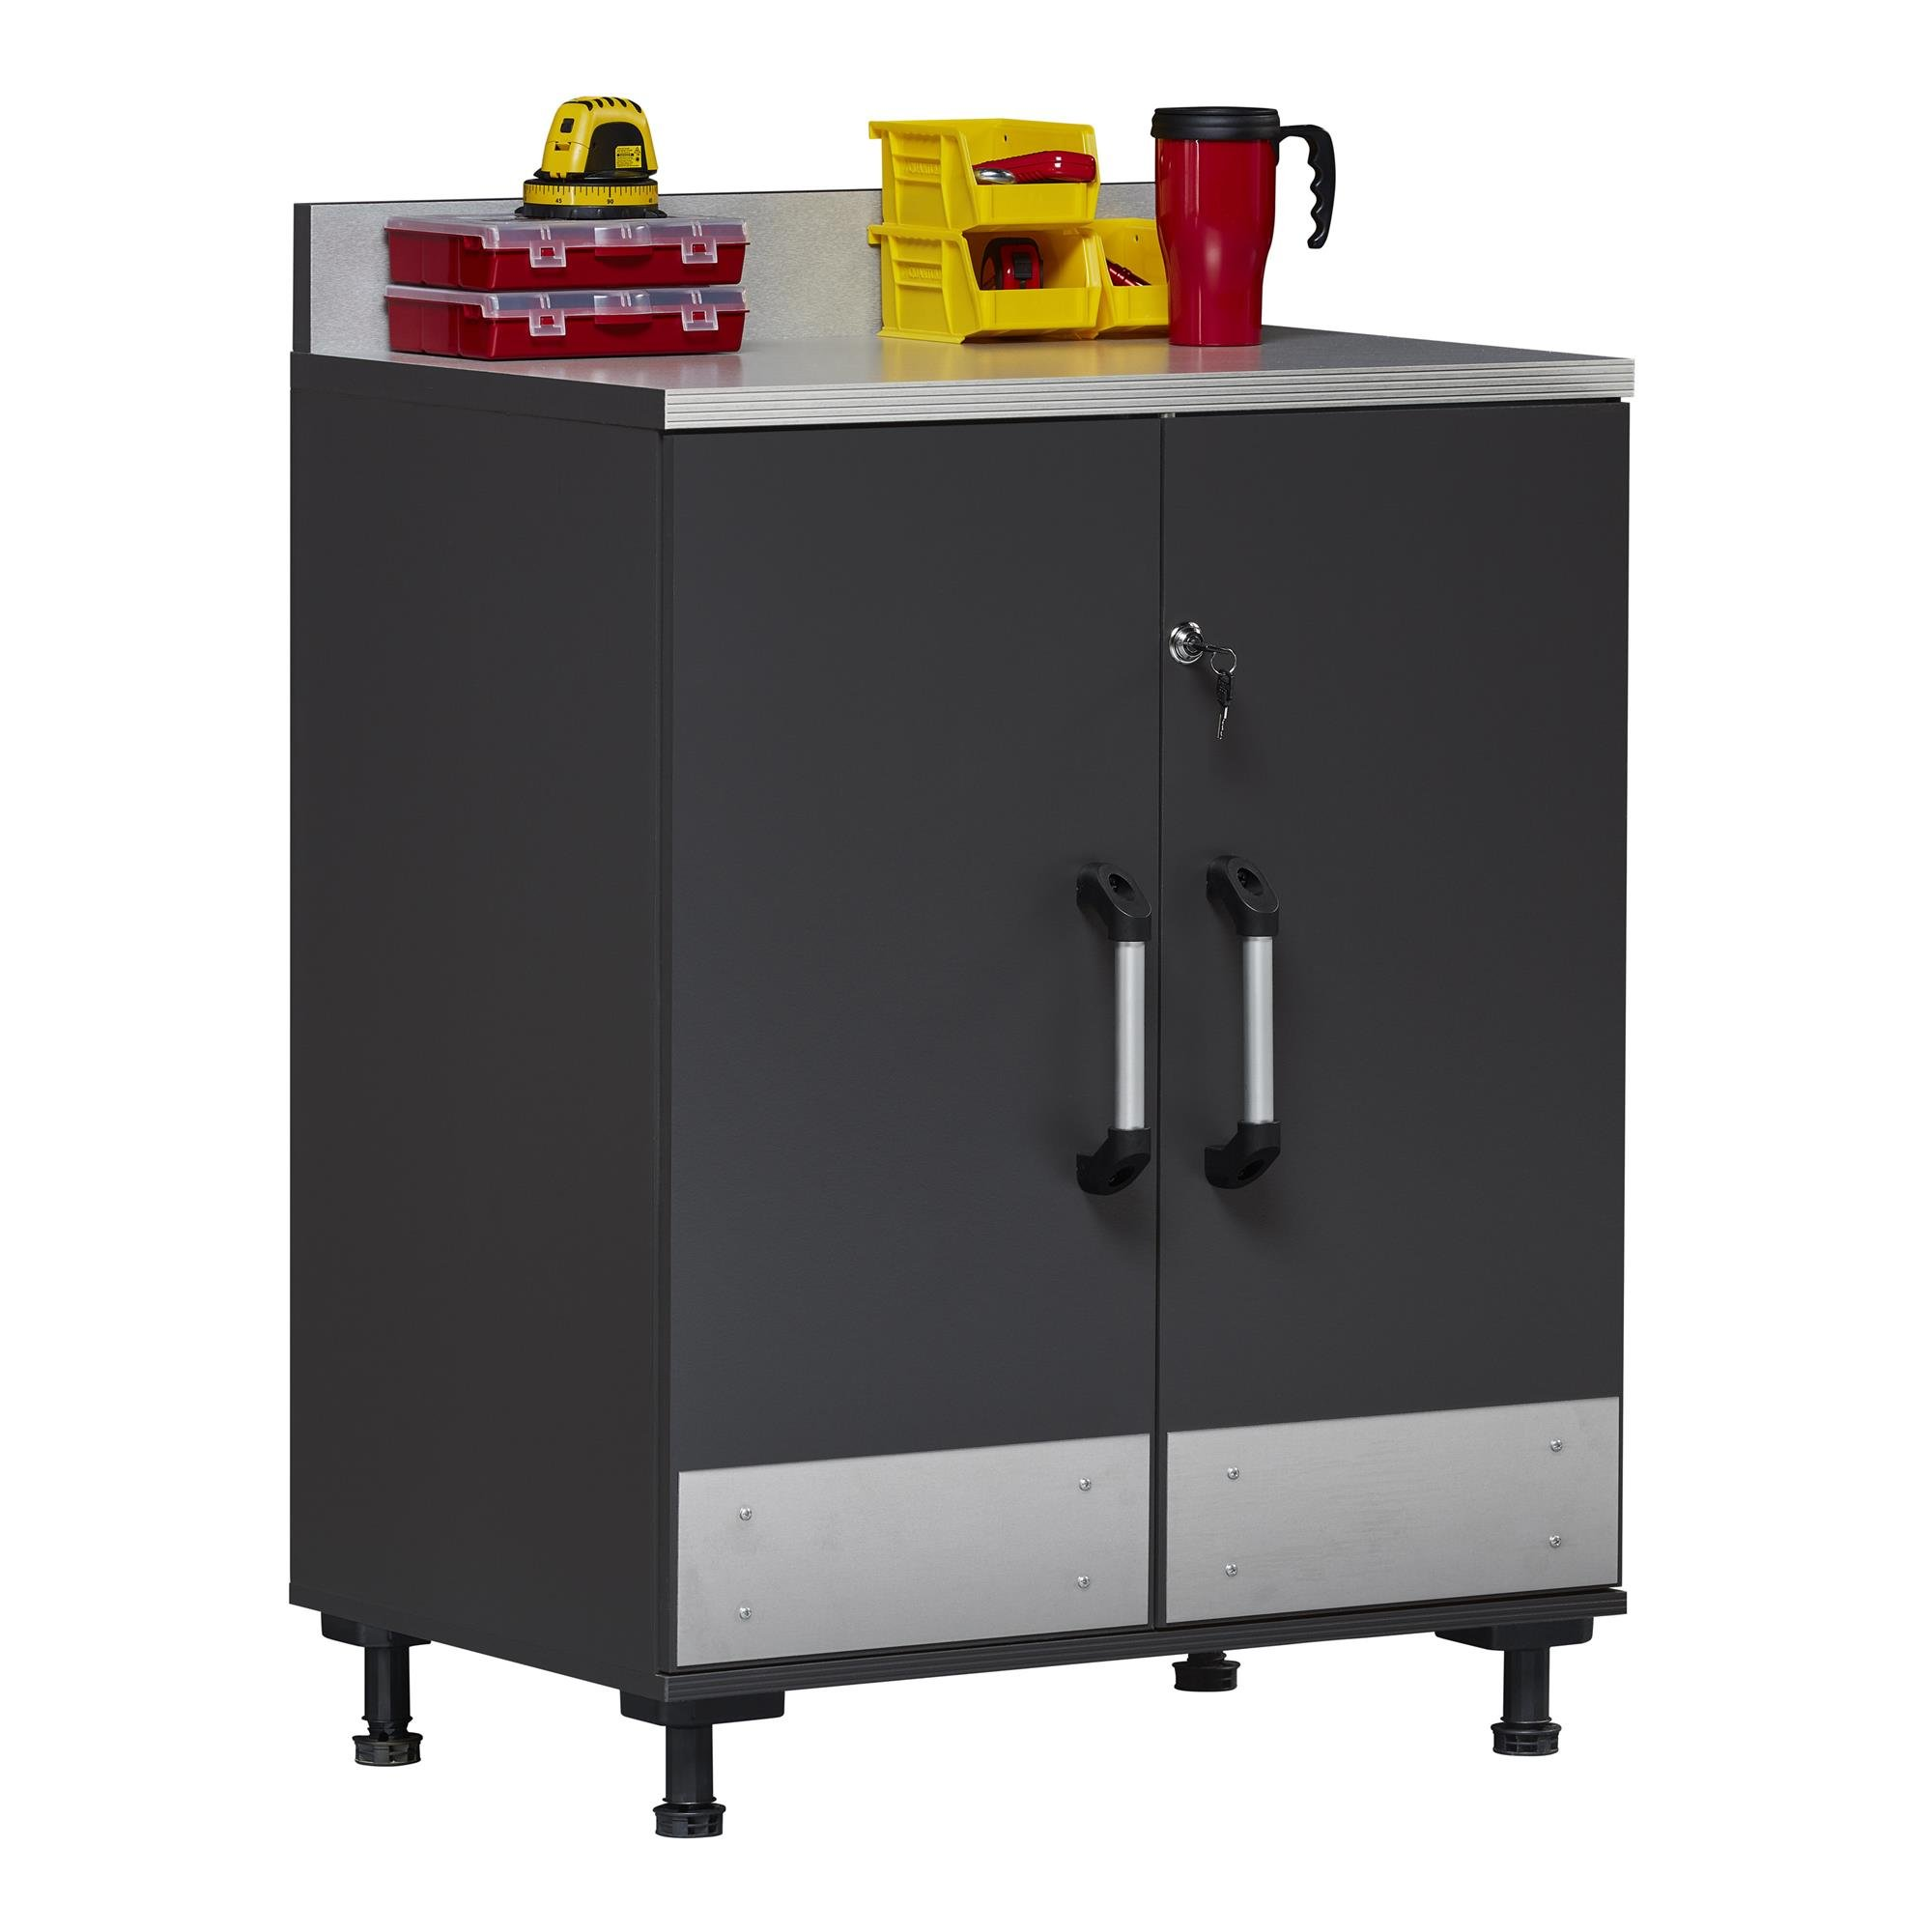 Ameriwood Home Boss -Base Cabinet 2 Door, Charcoal Gray by Ameriwood Home (Image #18)